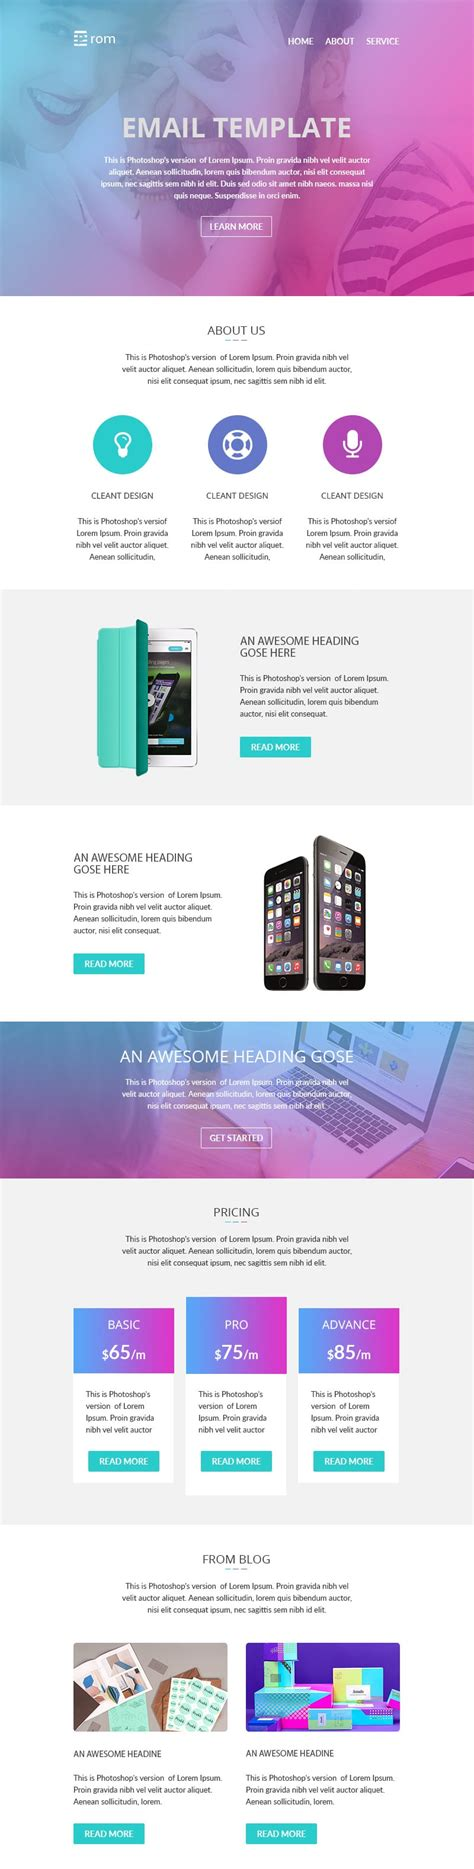 Free Email Newsletter Templates Psd 187 Css Author Newsletter Templates